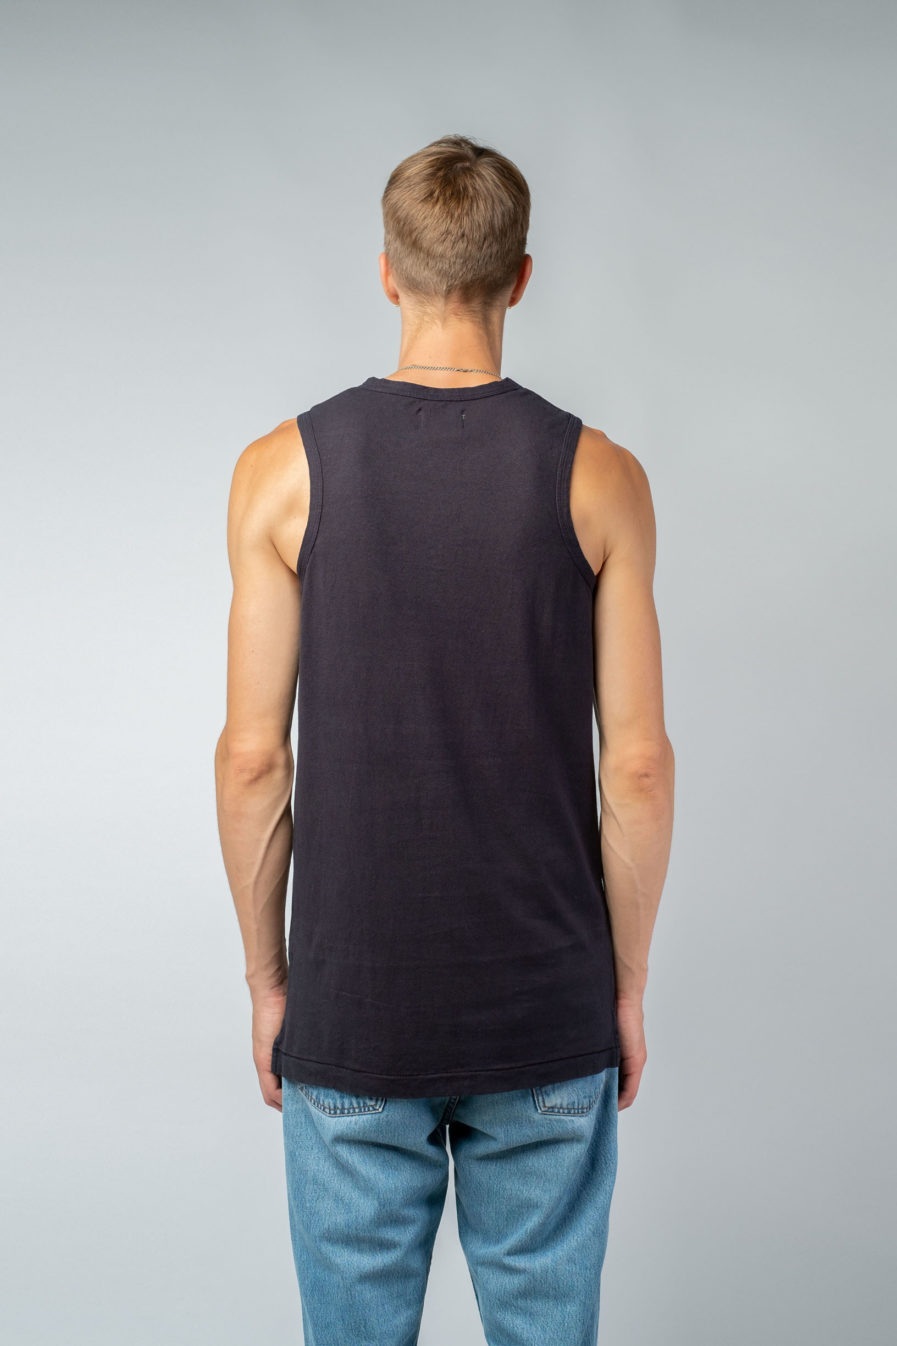 MAN unisex singlet tanktop hemp organic cotton MALIK Carbon black back